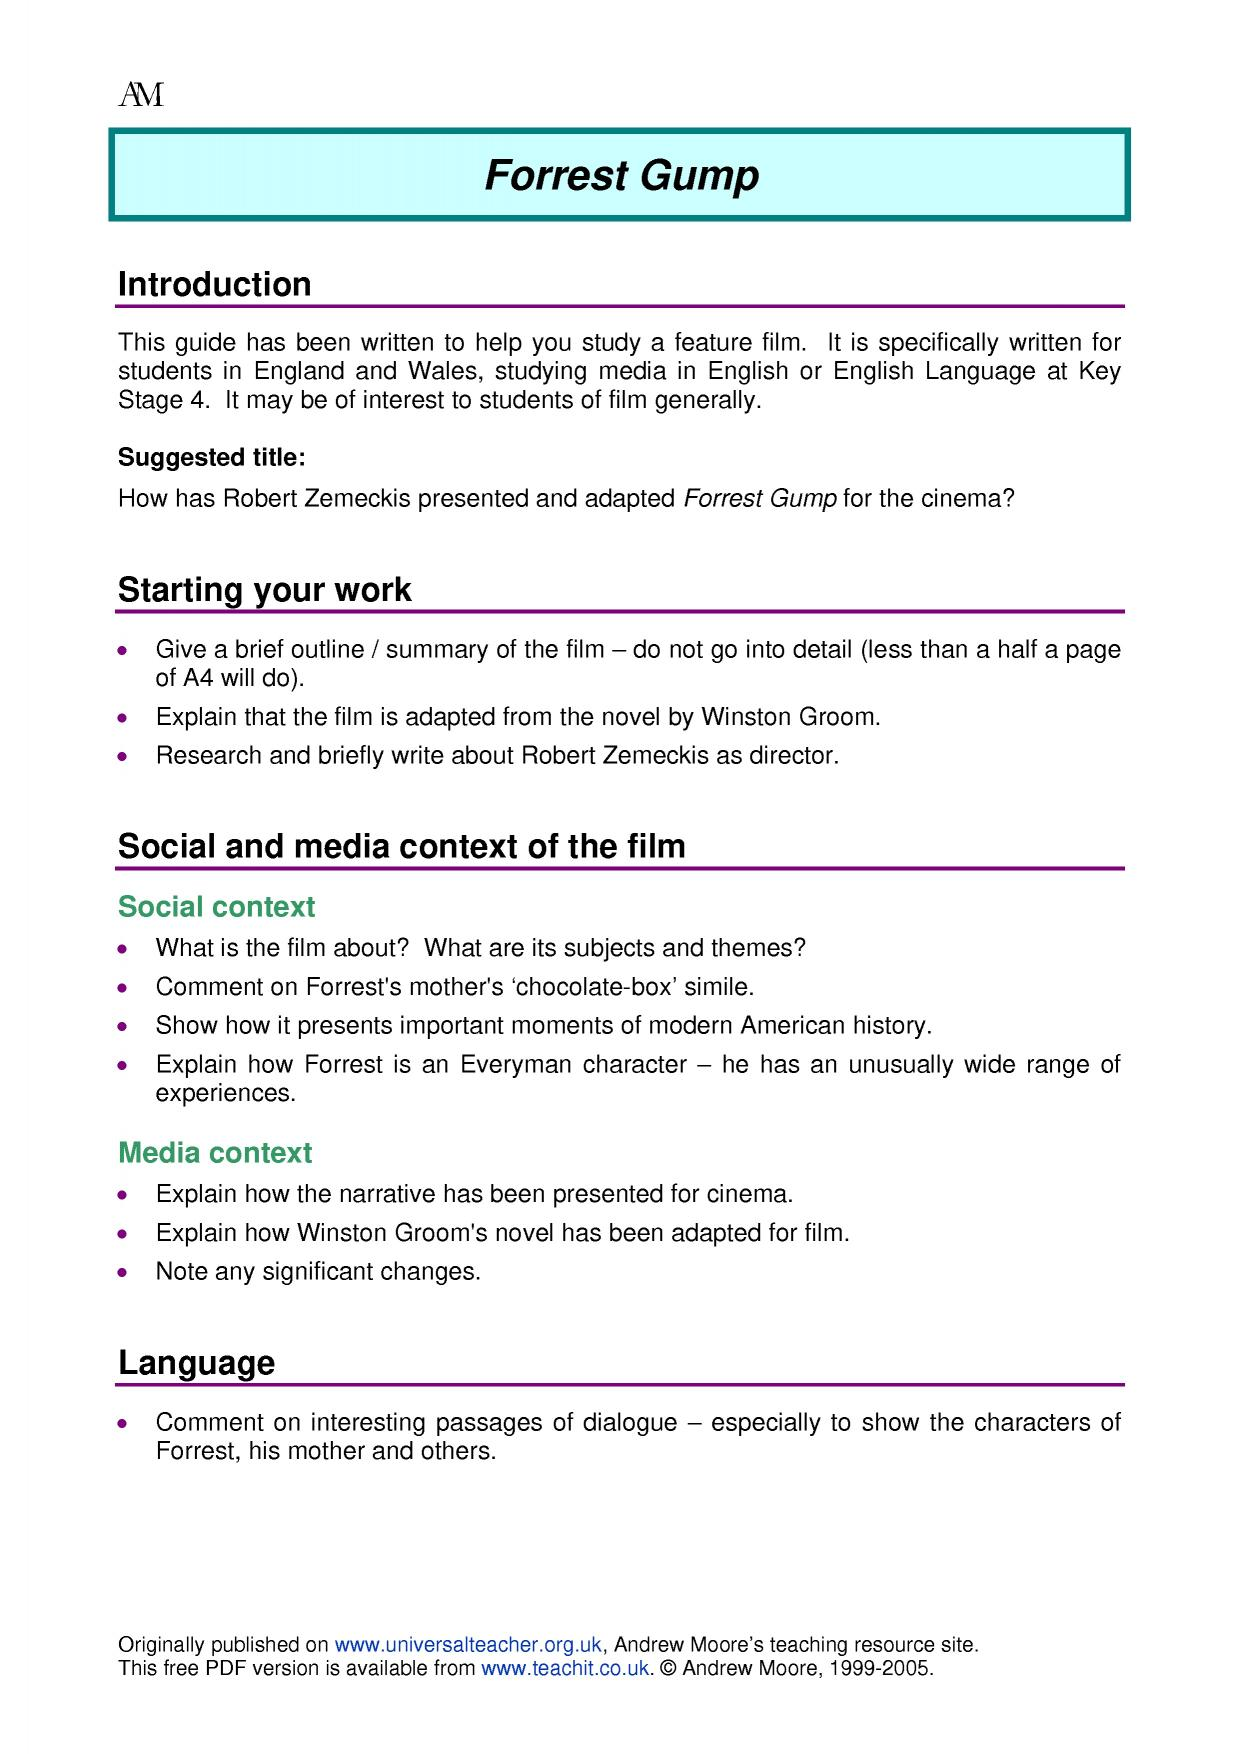 Study Guide For Movie Glory - computertechnicianschools.org